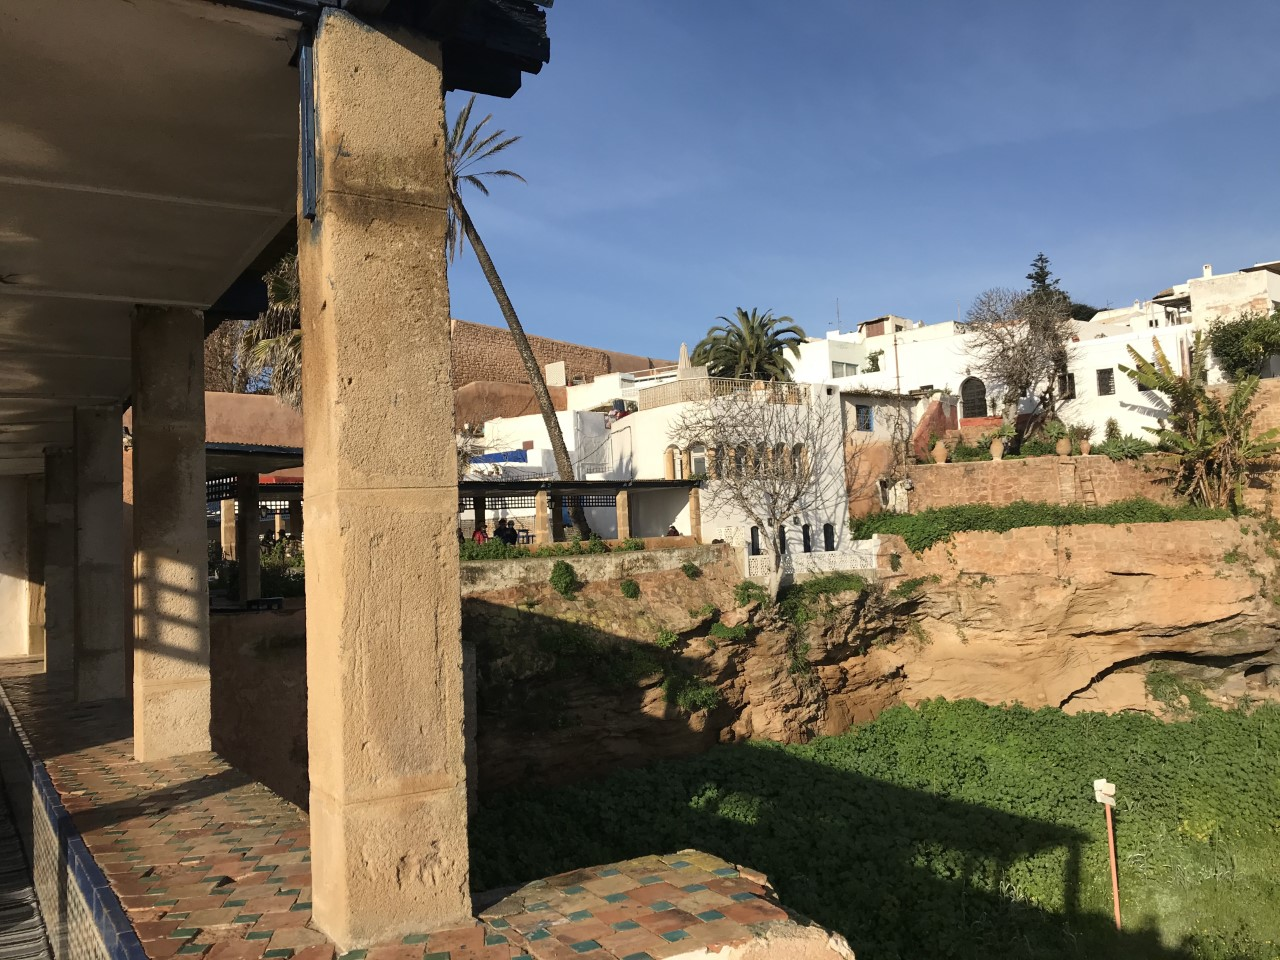 A cafe overlooking the Kasbah of the Udayas